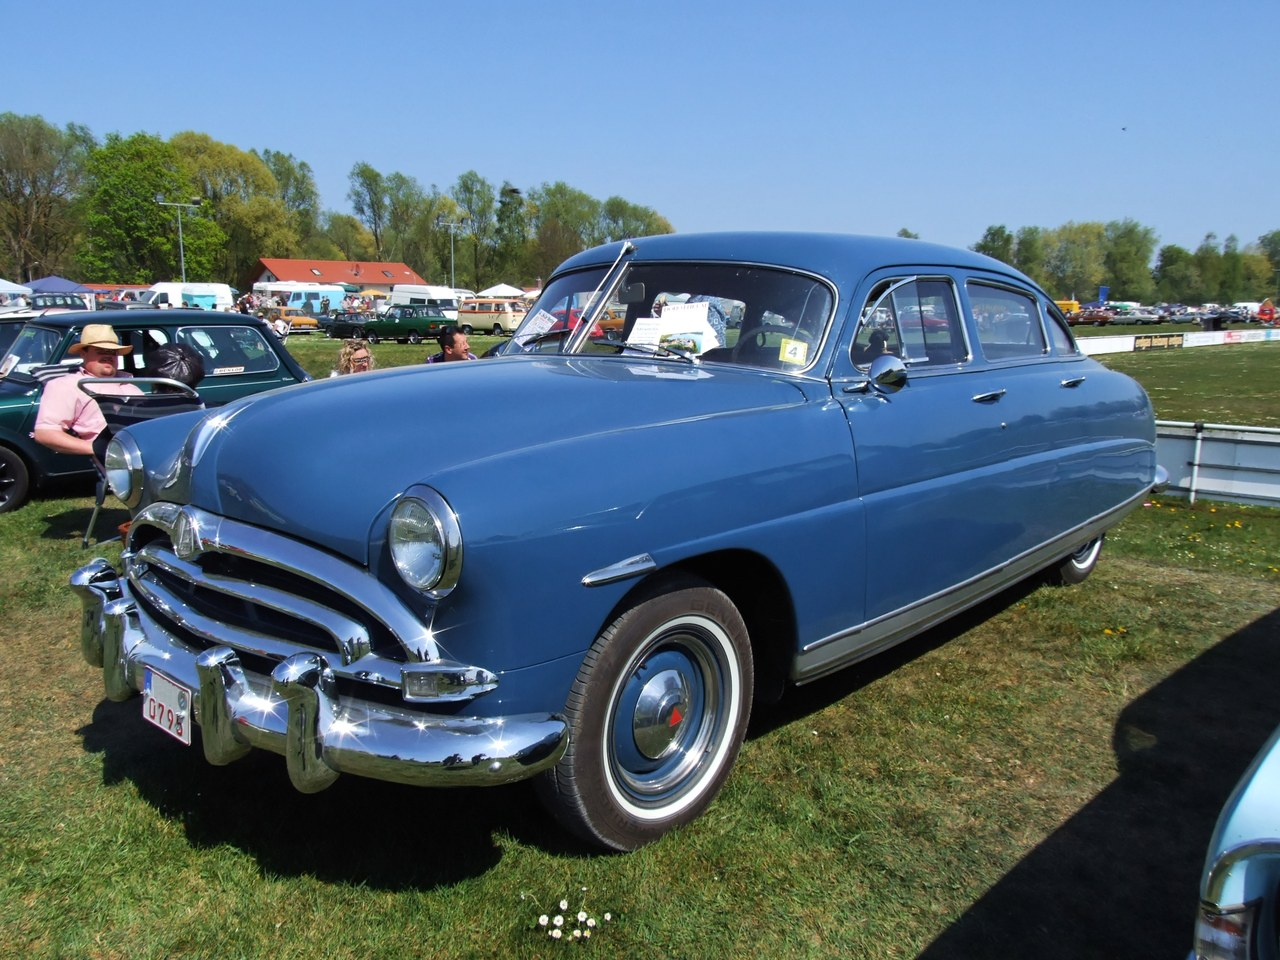 Automotive Led: 1952 Hudson Commodore-8 Convertible - Accident